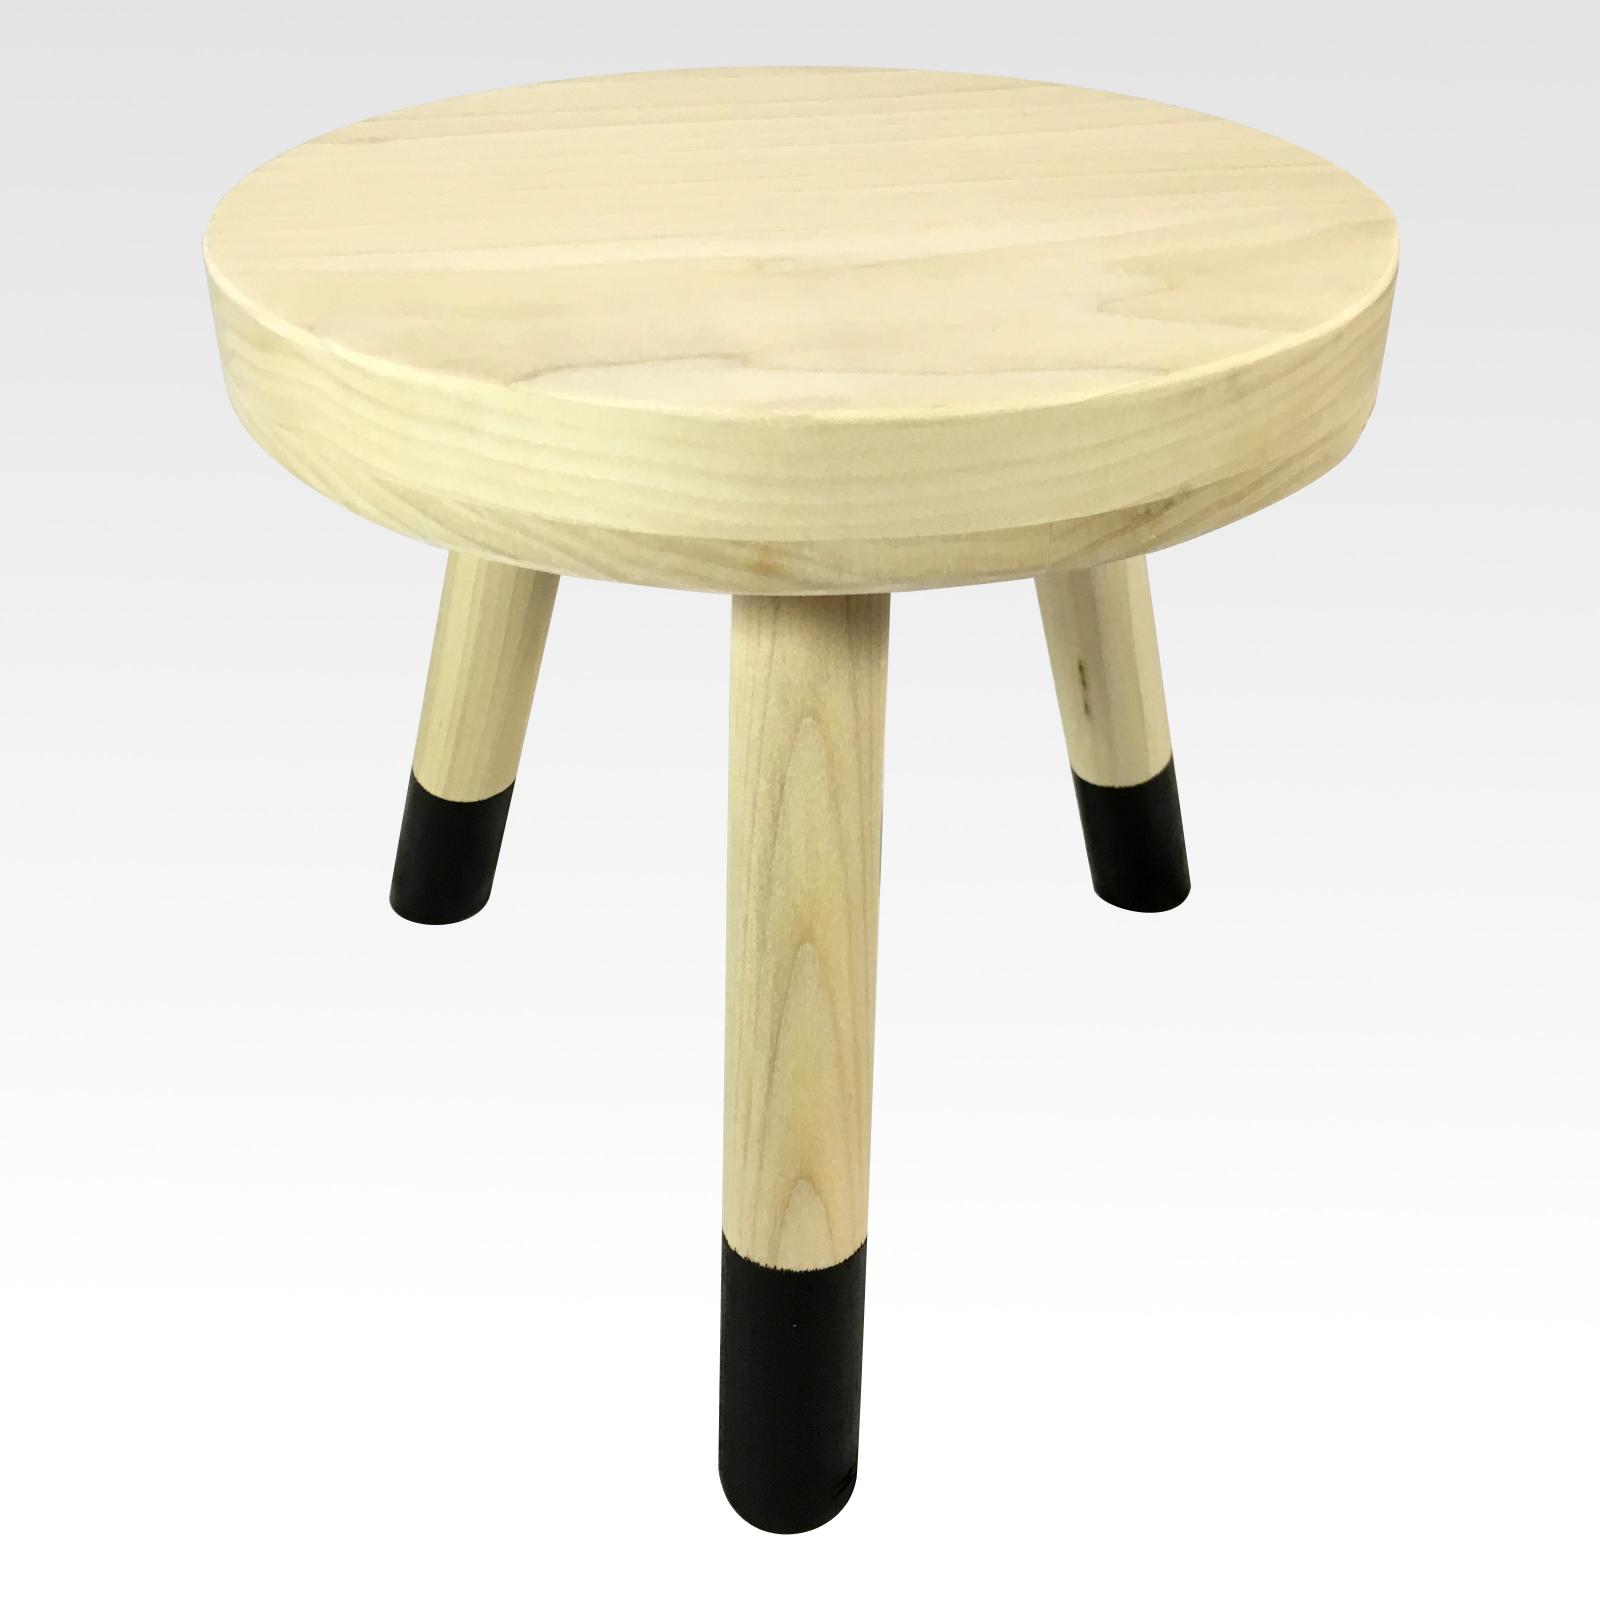 Wood Plant Stand Small Stool Tea Table Wooden Pale And